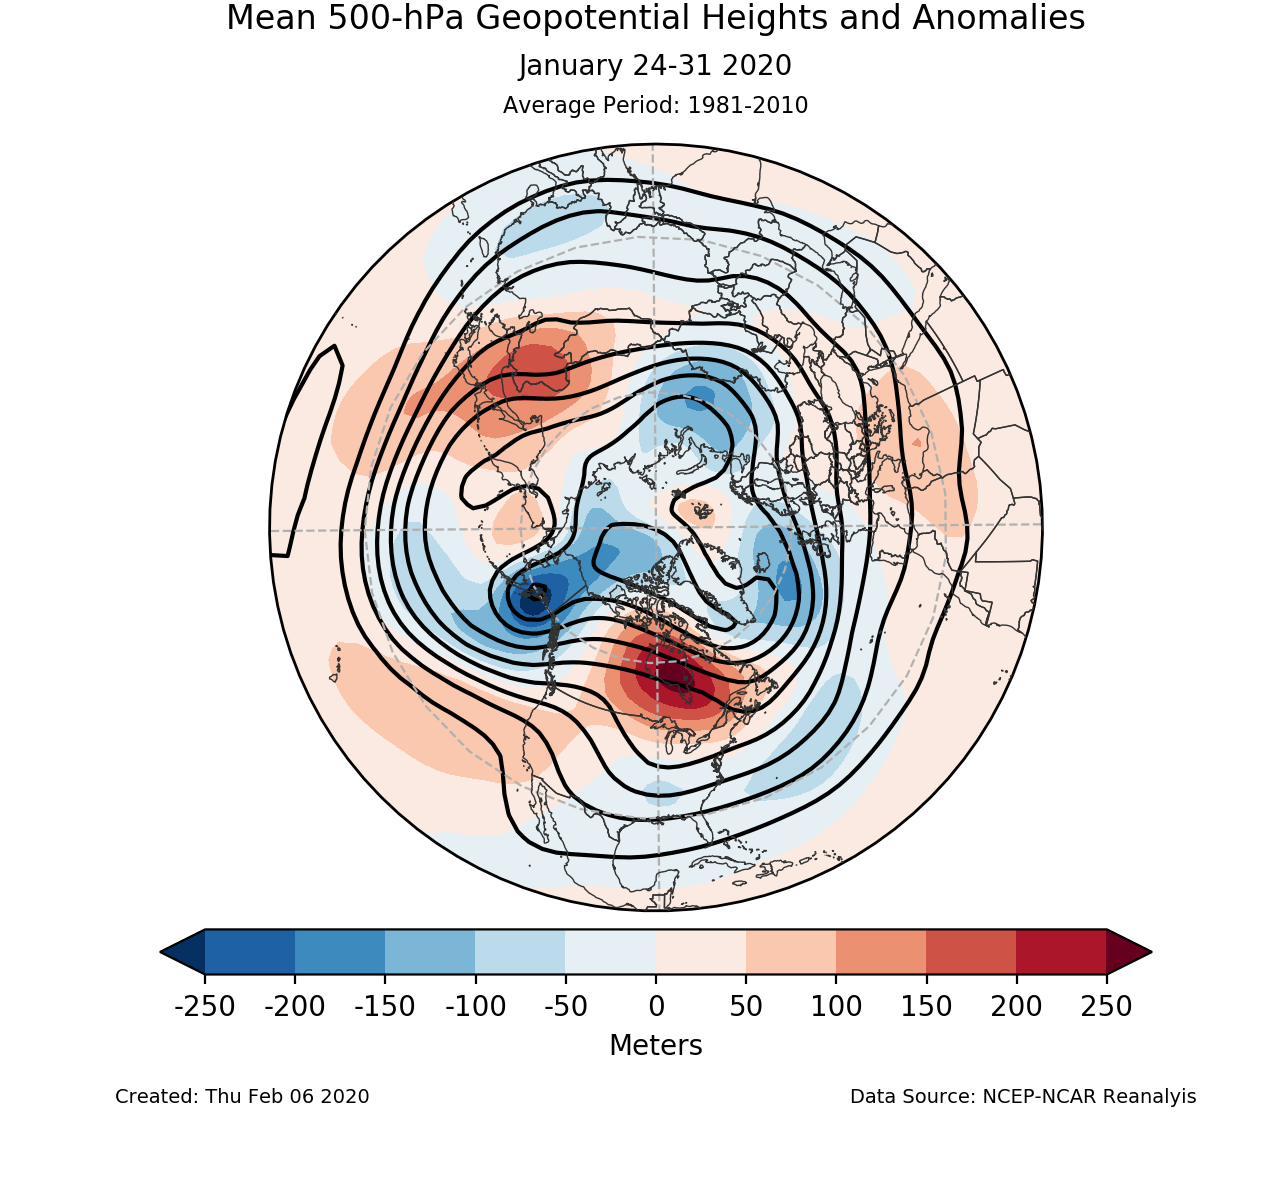 500-mb mean circulation for the Northern Hemisphere for January 24-31 2020